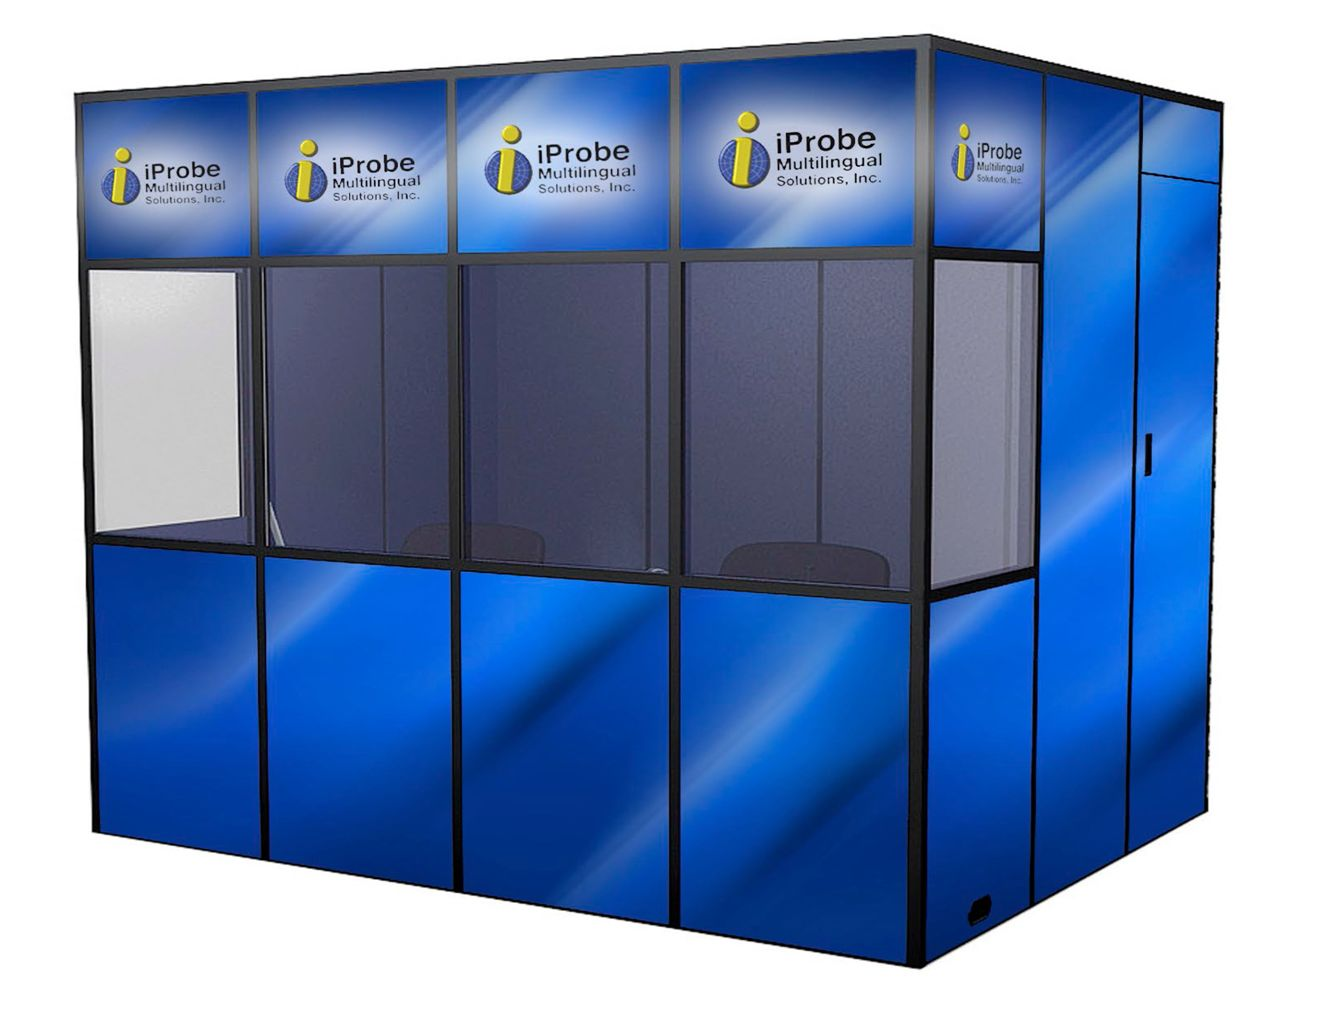 an illustration of a branded extra large asmr booth